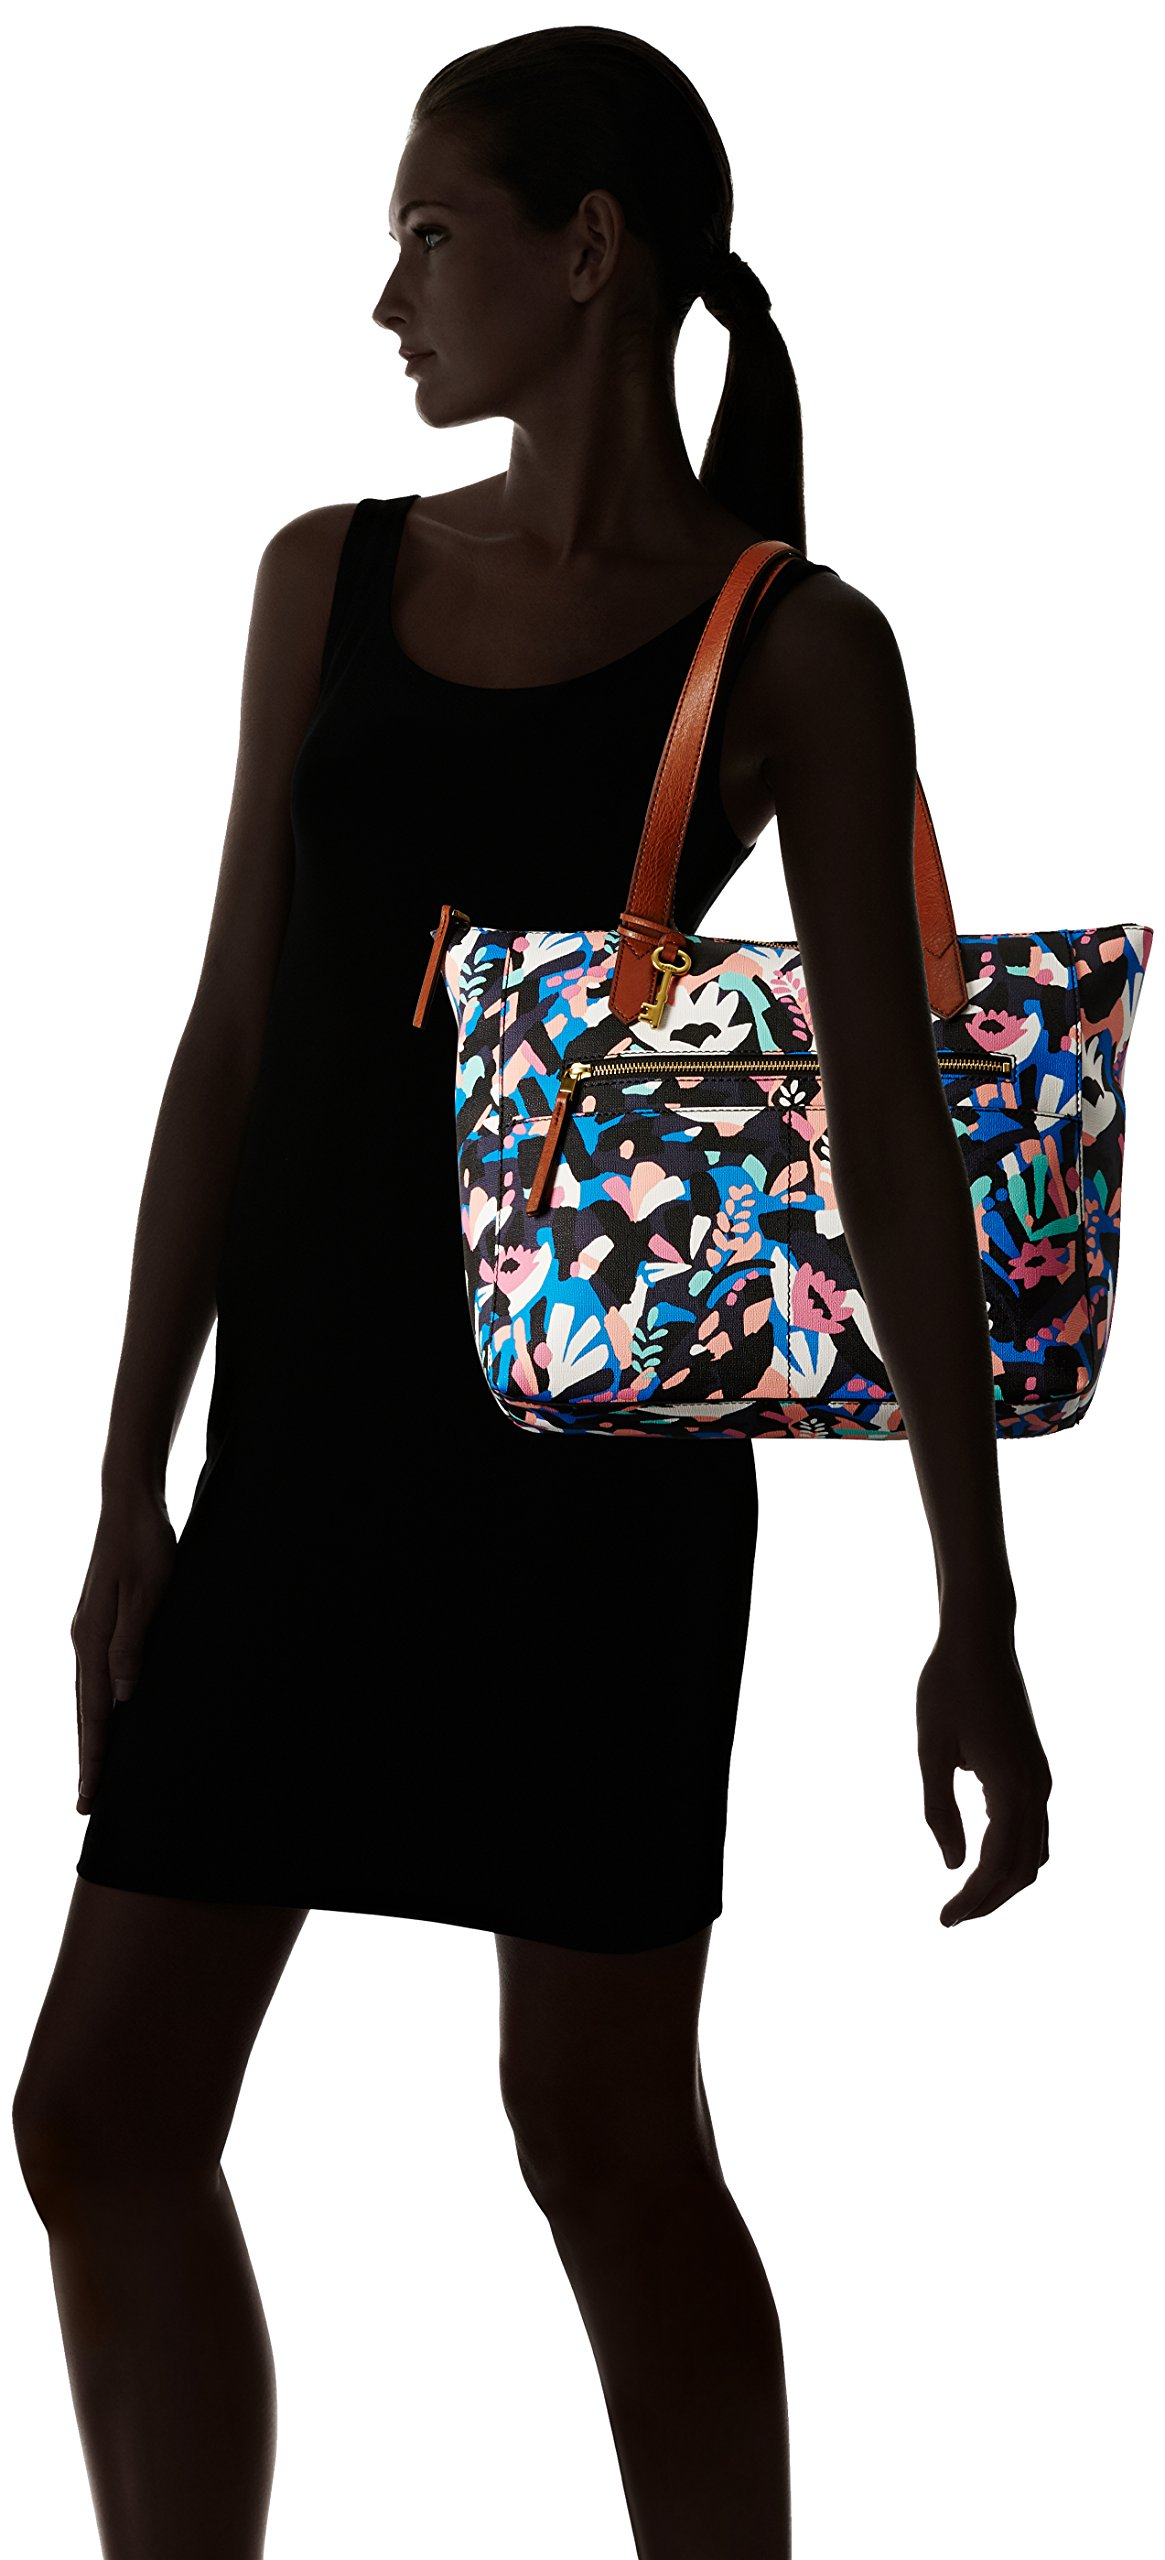 Fossil Fiona E/W Tote Bag, Black Floral,One Size by Fossil (Image #6)